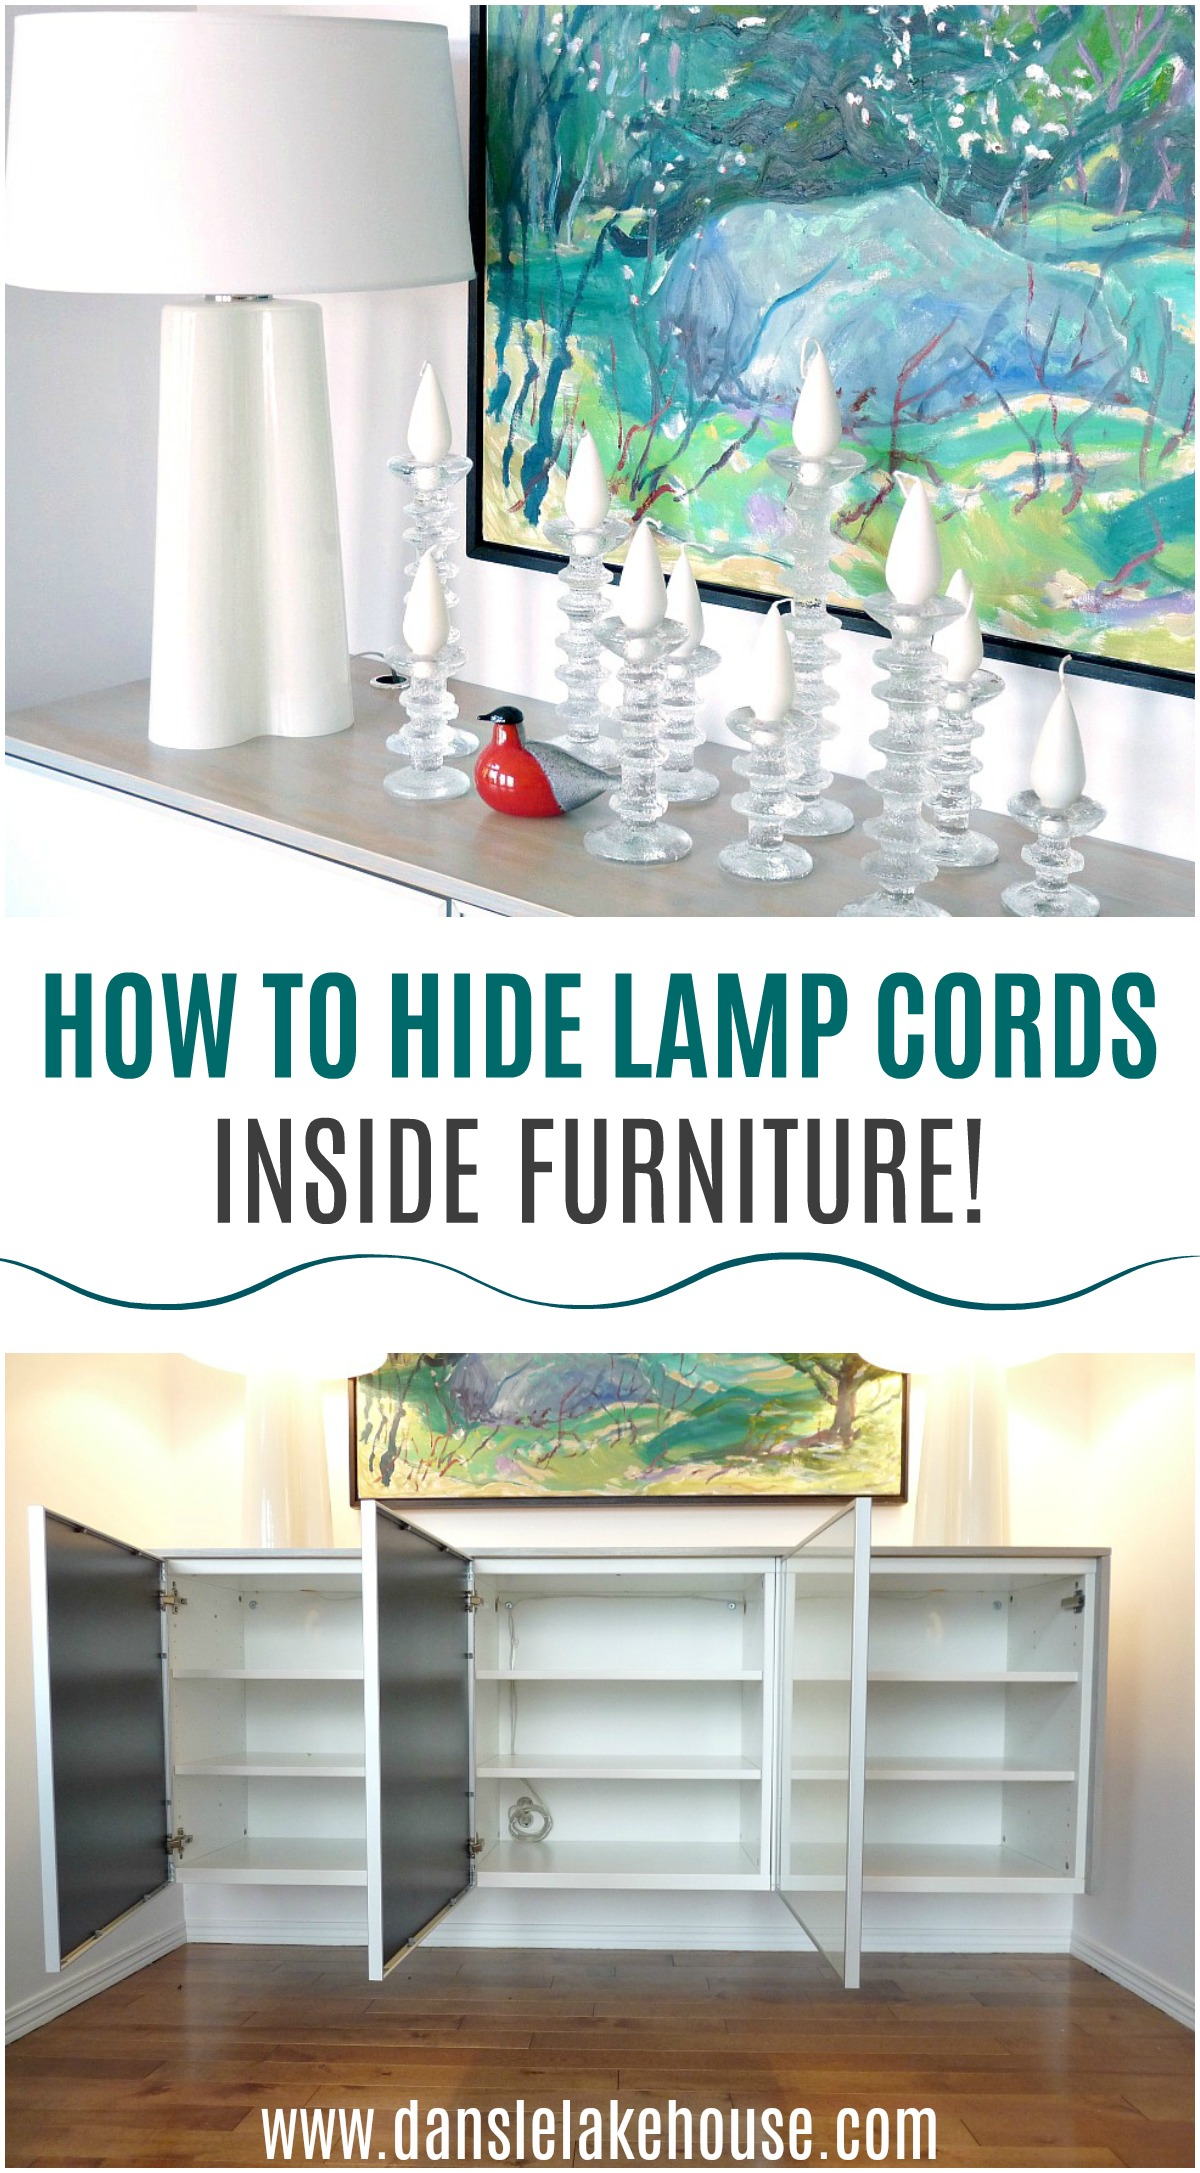 How to Hide Lamp Cords Inside Furniture